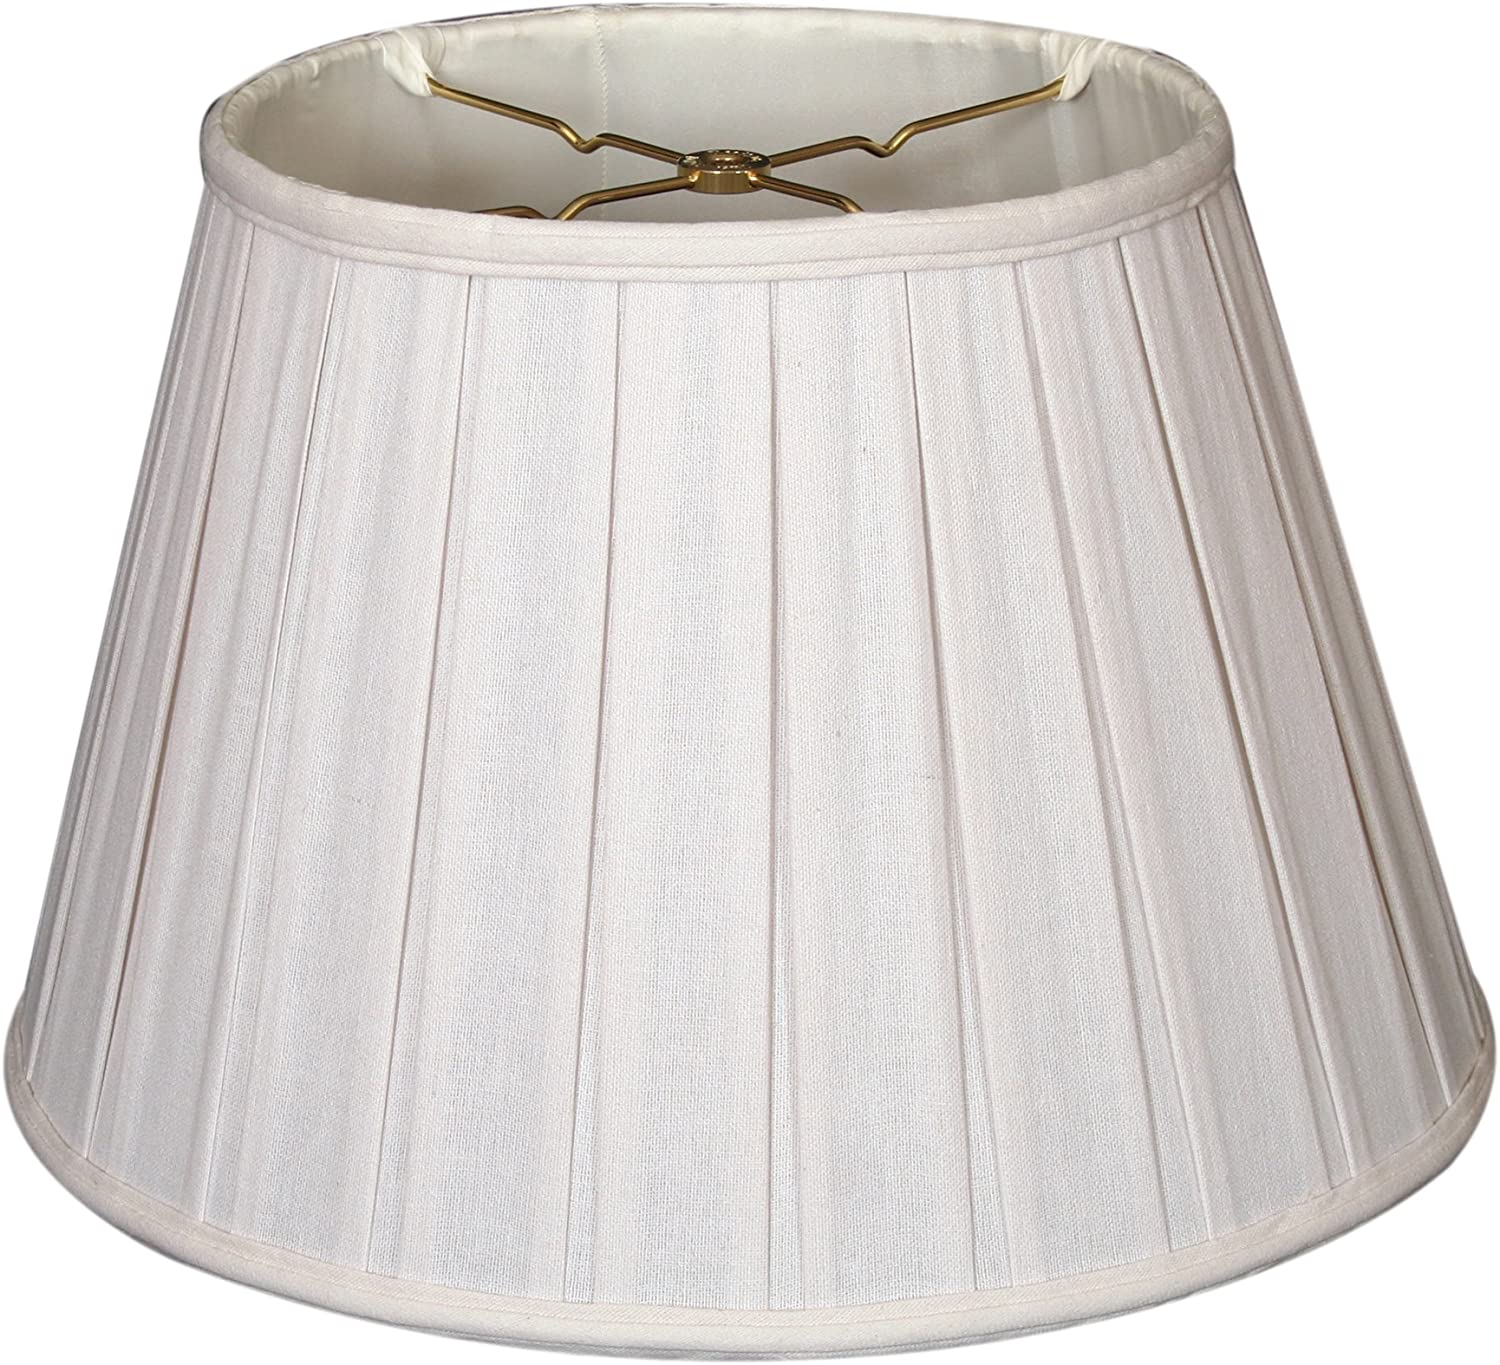 Royal Designs DBS-724-18LNWH Series Empire English Pleat Basic Lamp Shade, Linen White, 11 x 18 x 12